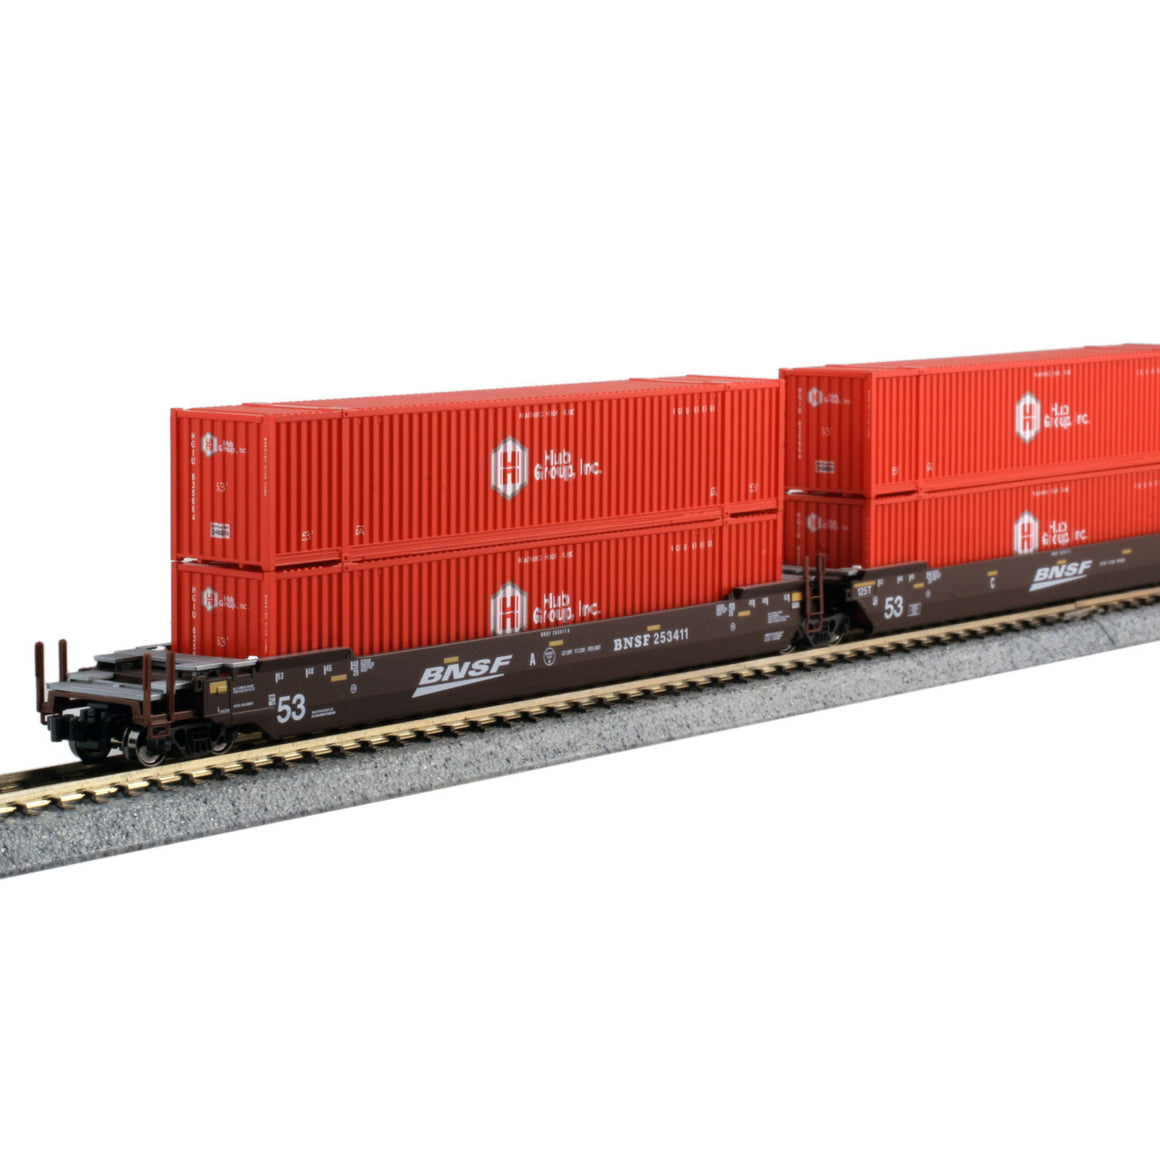 N Scale: Gunderson Maxi-IV Articulated Well Car w/ Containers - BNSF 'Swoosh'